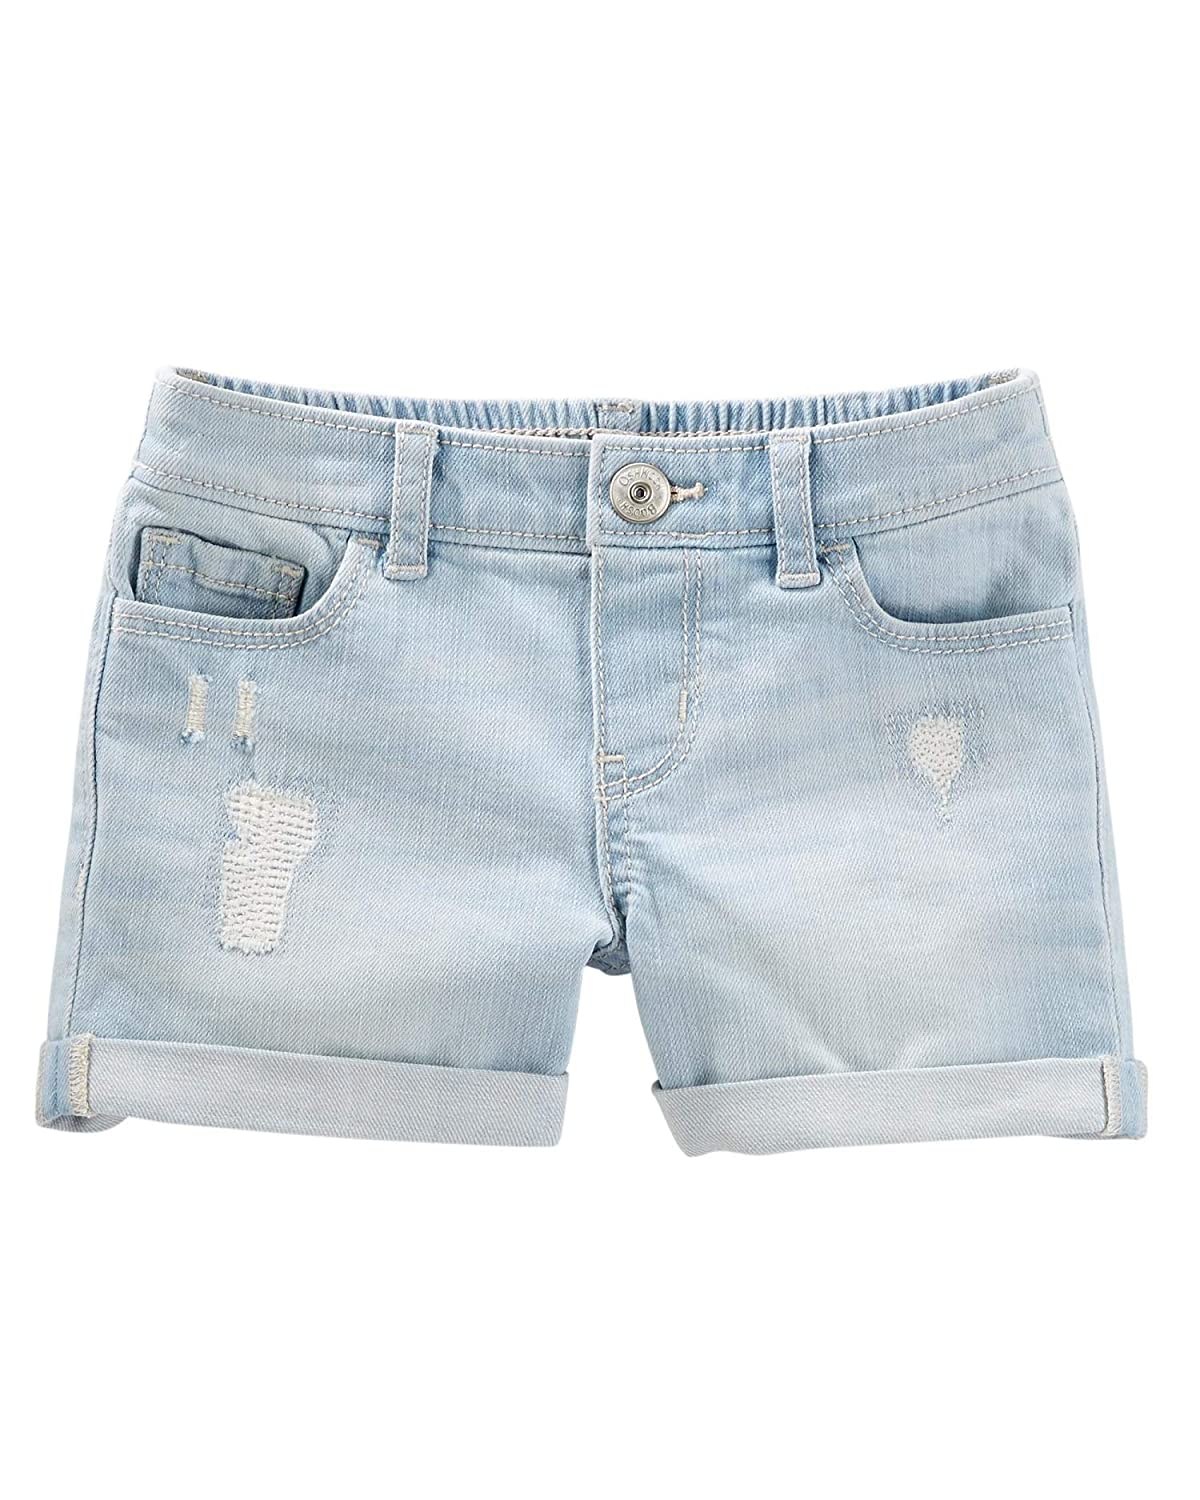 7 Kids OshKosh BGosh Little Girls Stretch Denim Shorts Blue Ice Wash